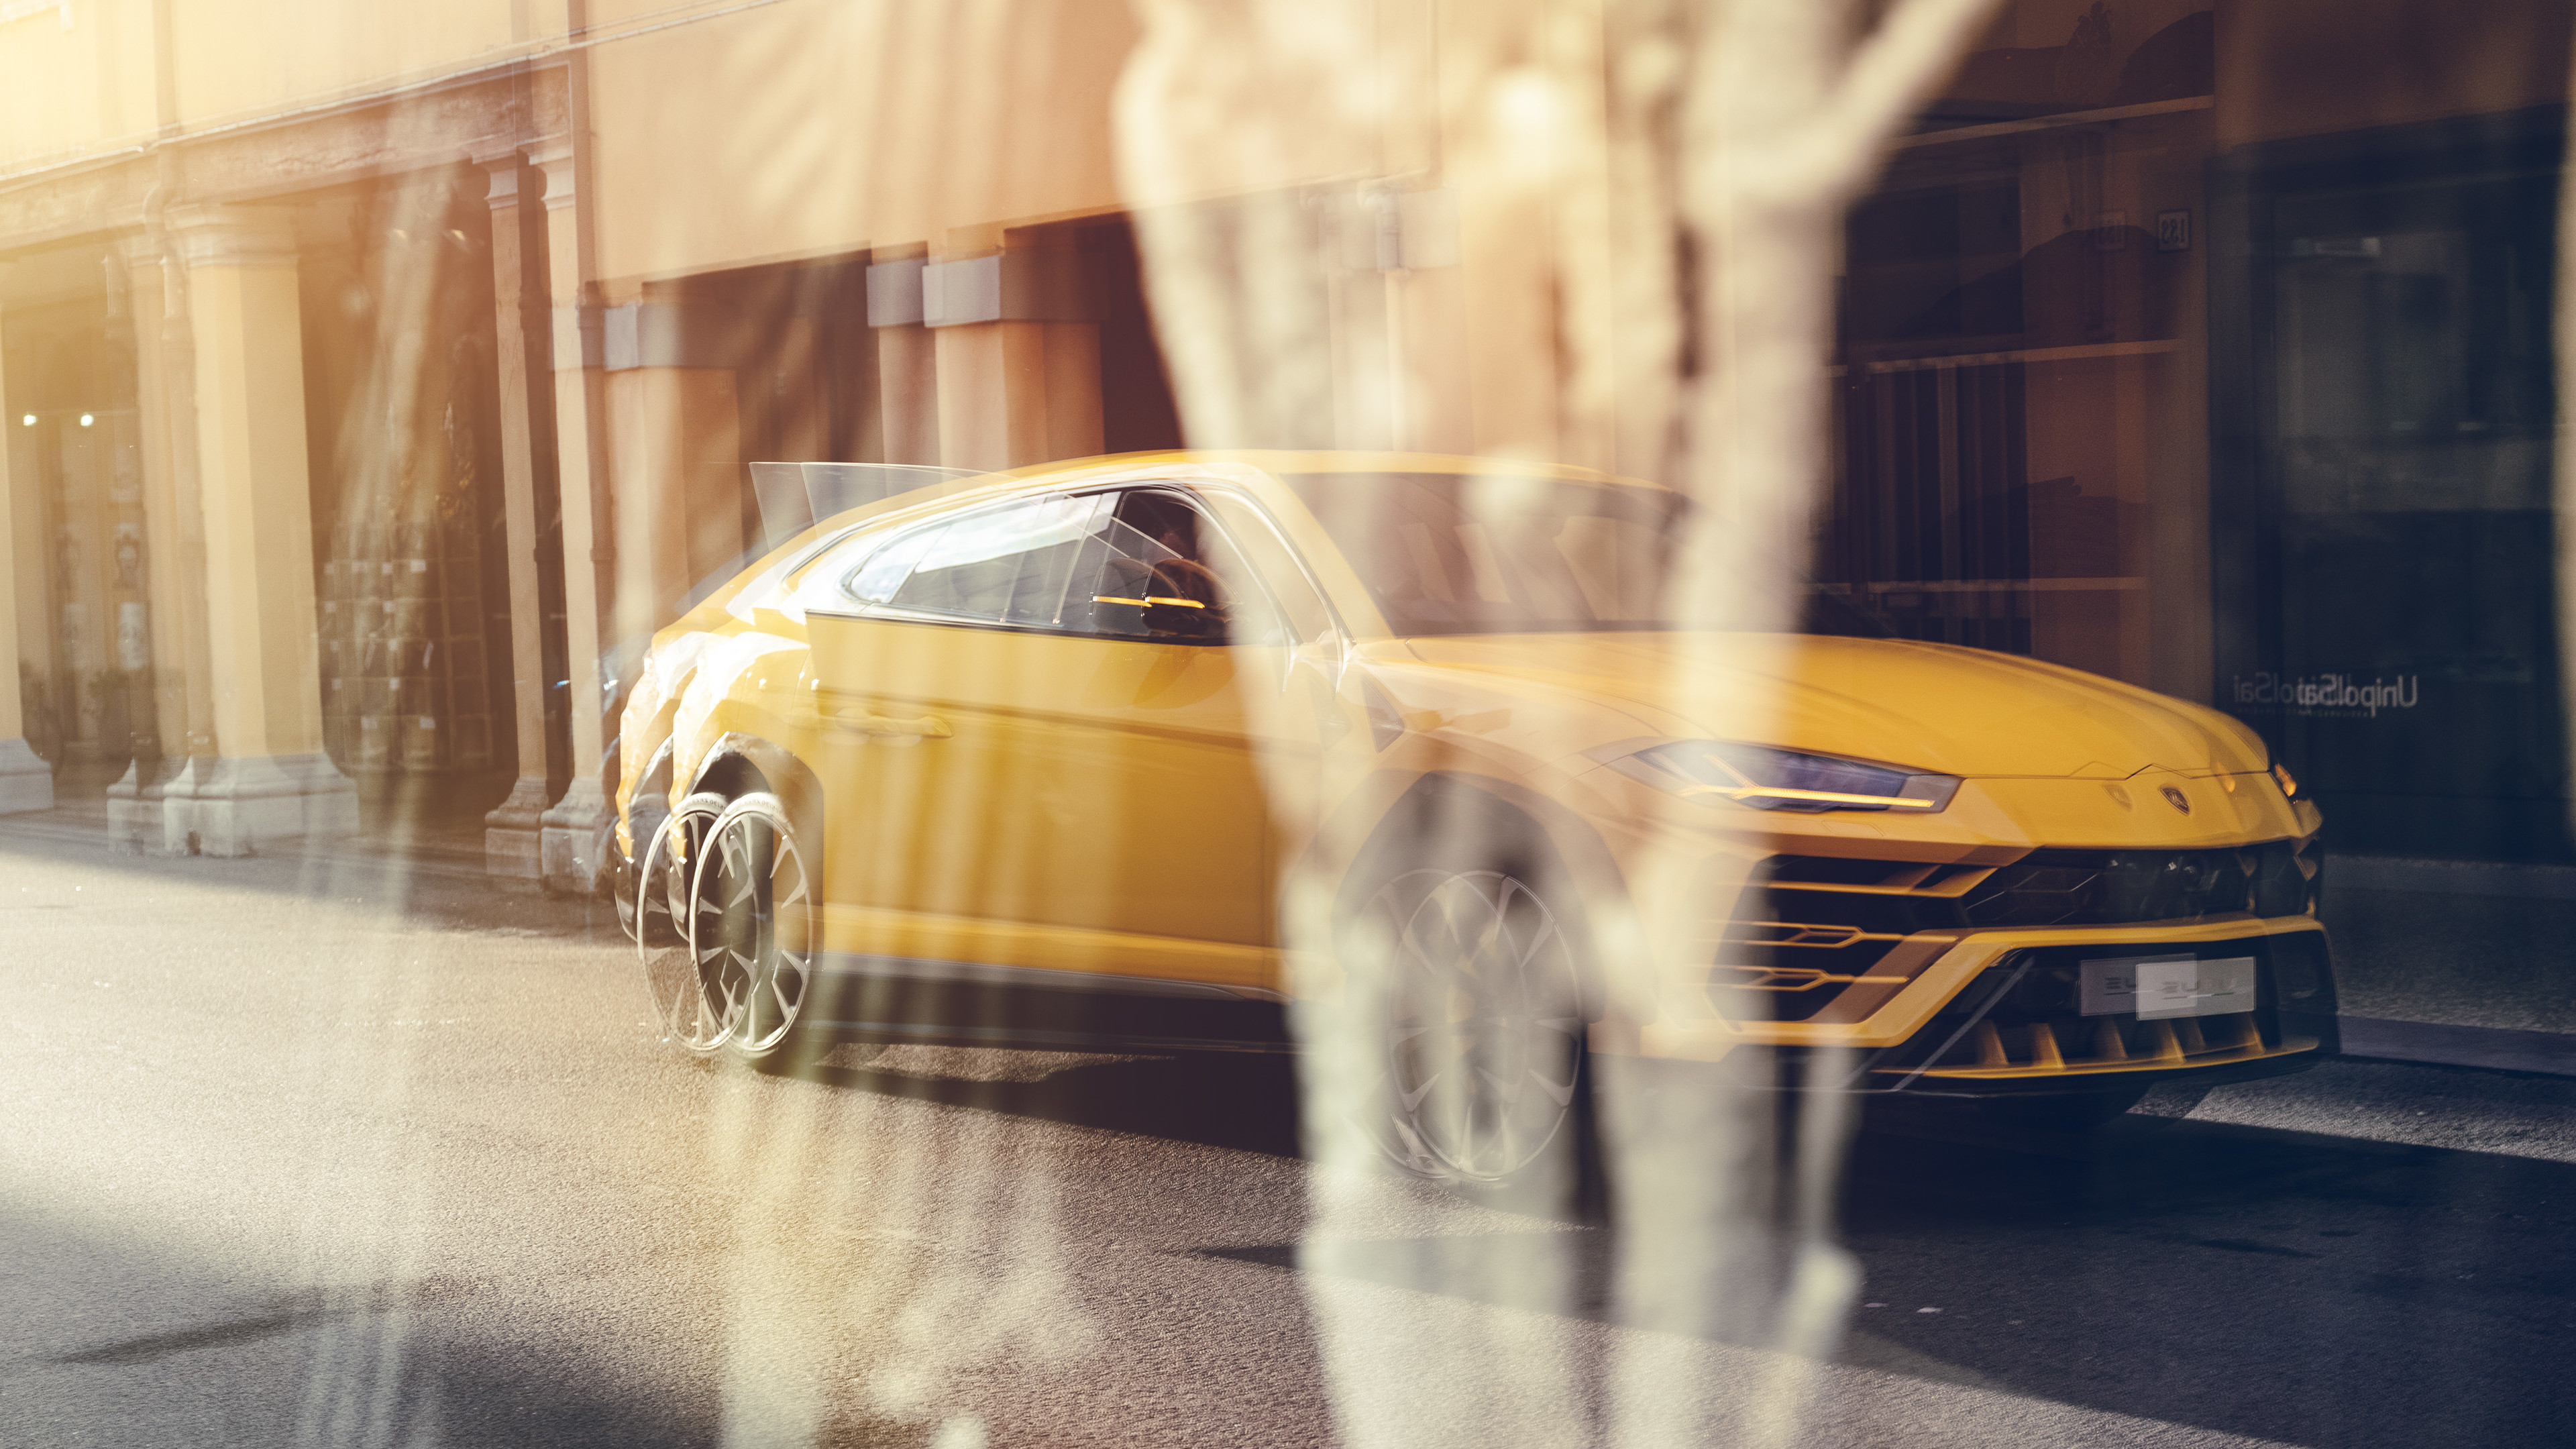 yellow lamborghini urus 2019 4k 1553075816 - Yellow Lamborghini Urus 2019 4k - suv wallpapers, lamborghini wallpapers, lamborghini urus wallpapers, hd-wallpapers, cars wallpapers, behance wallpapers, 4k-wallpapers, 2019 cars wallpapers